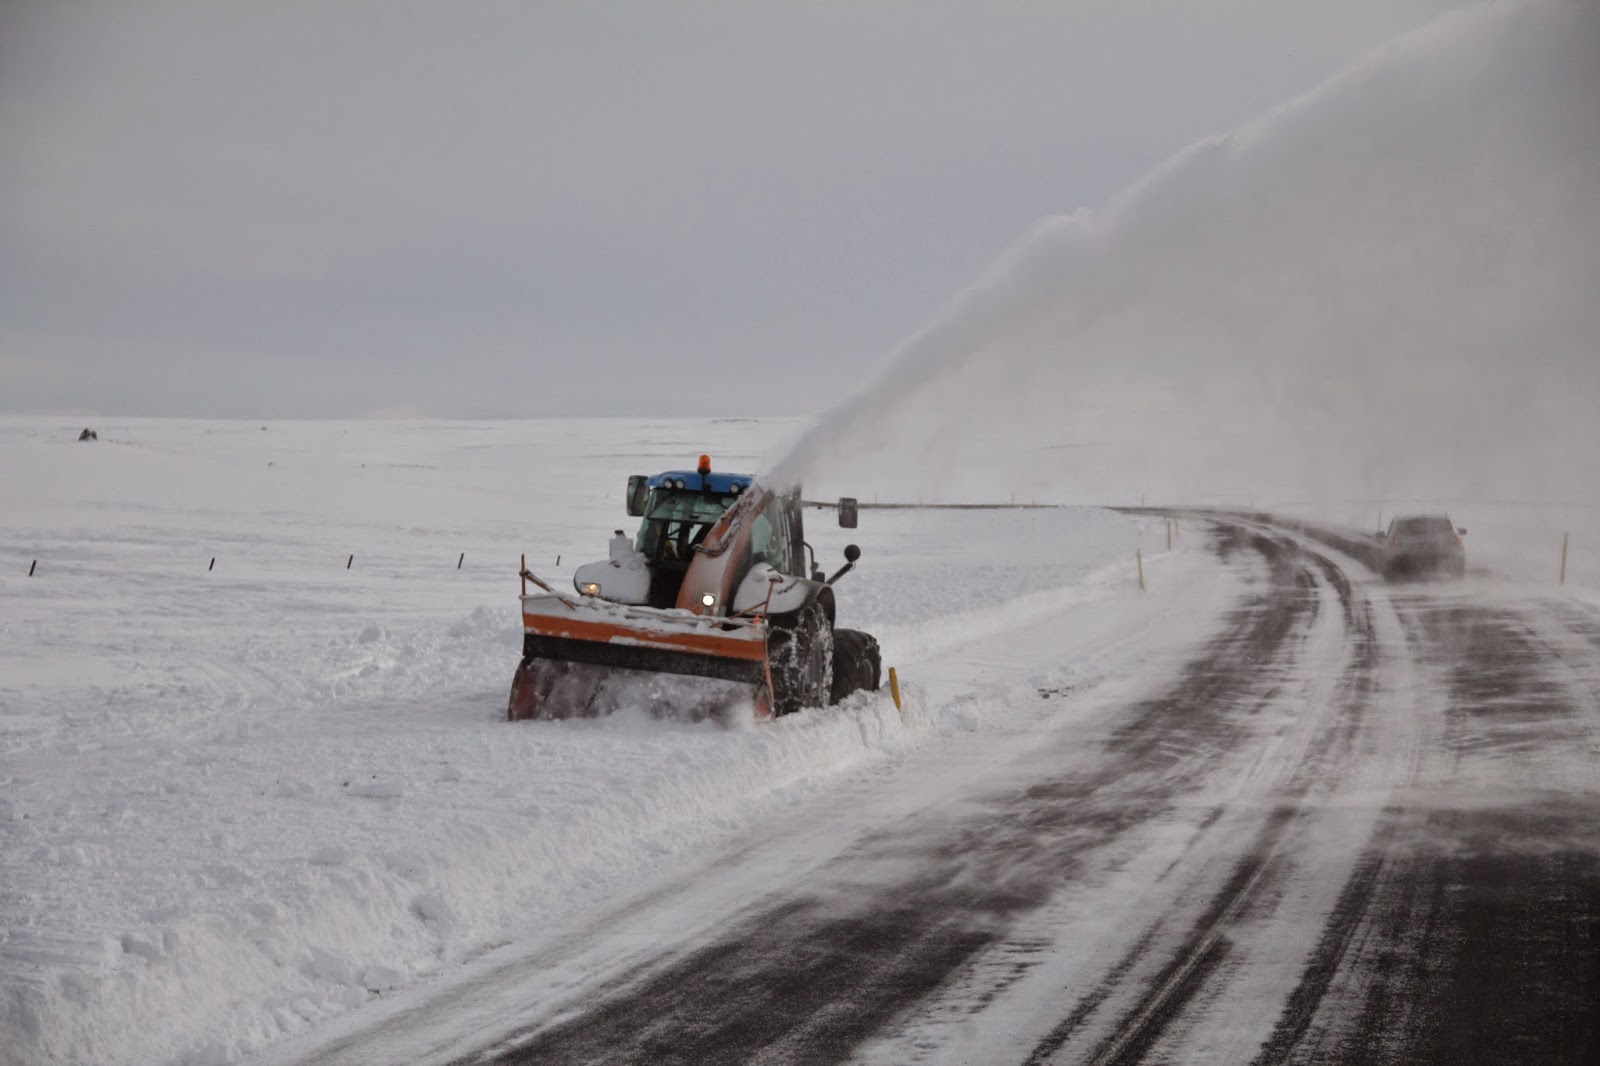 Snow being cleared after a blizzard